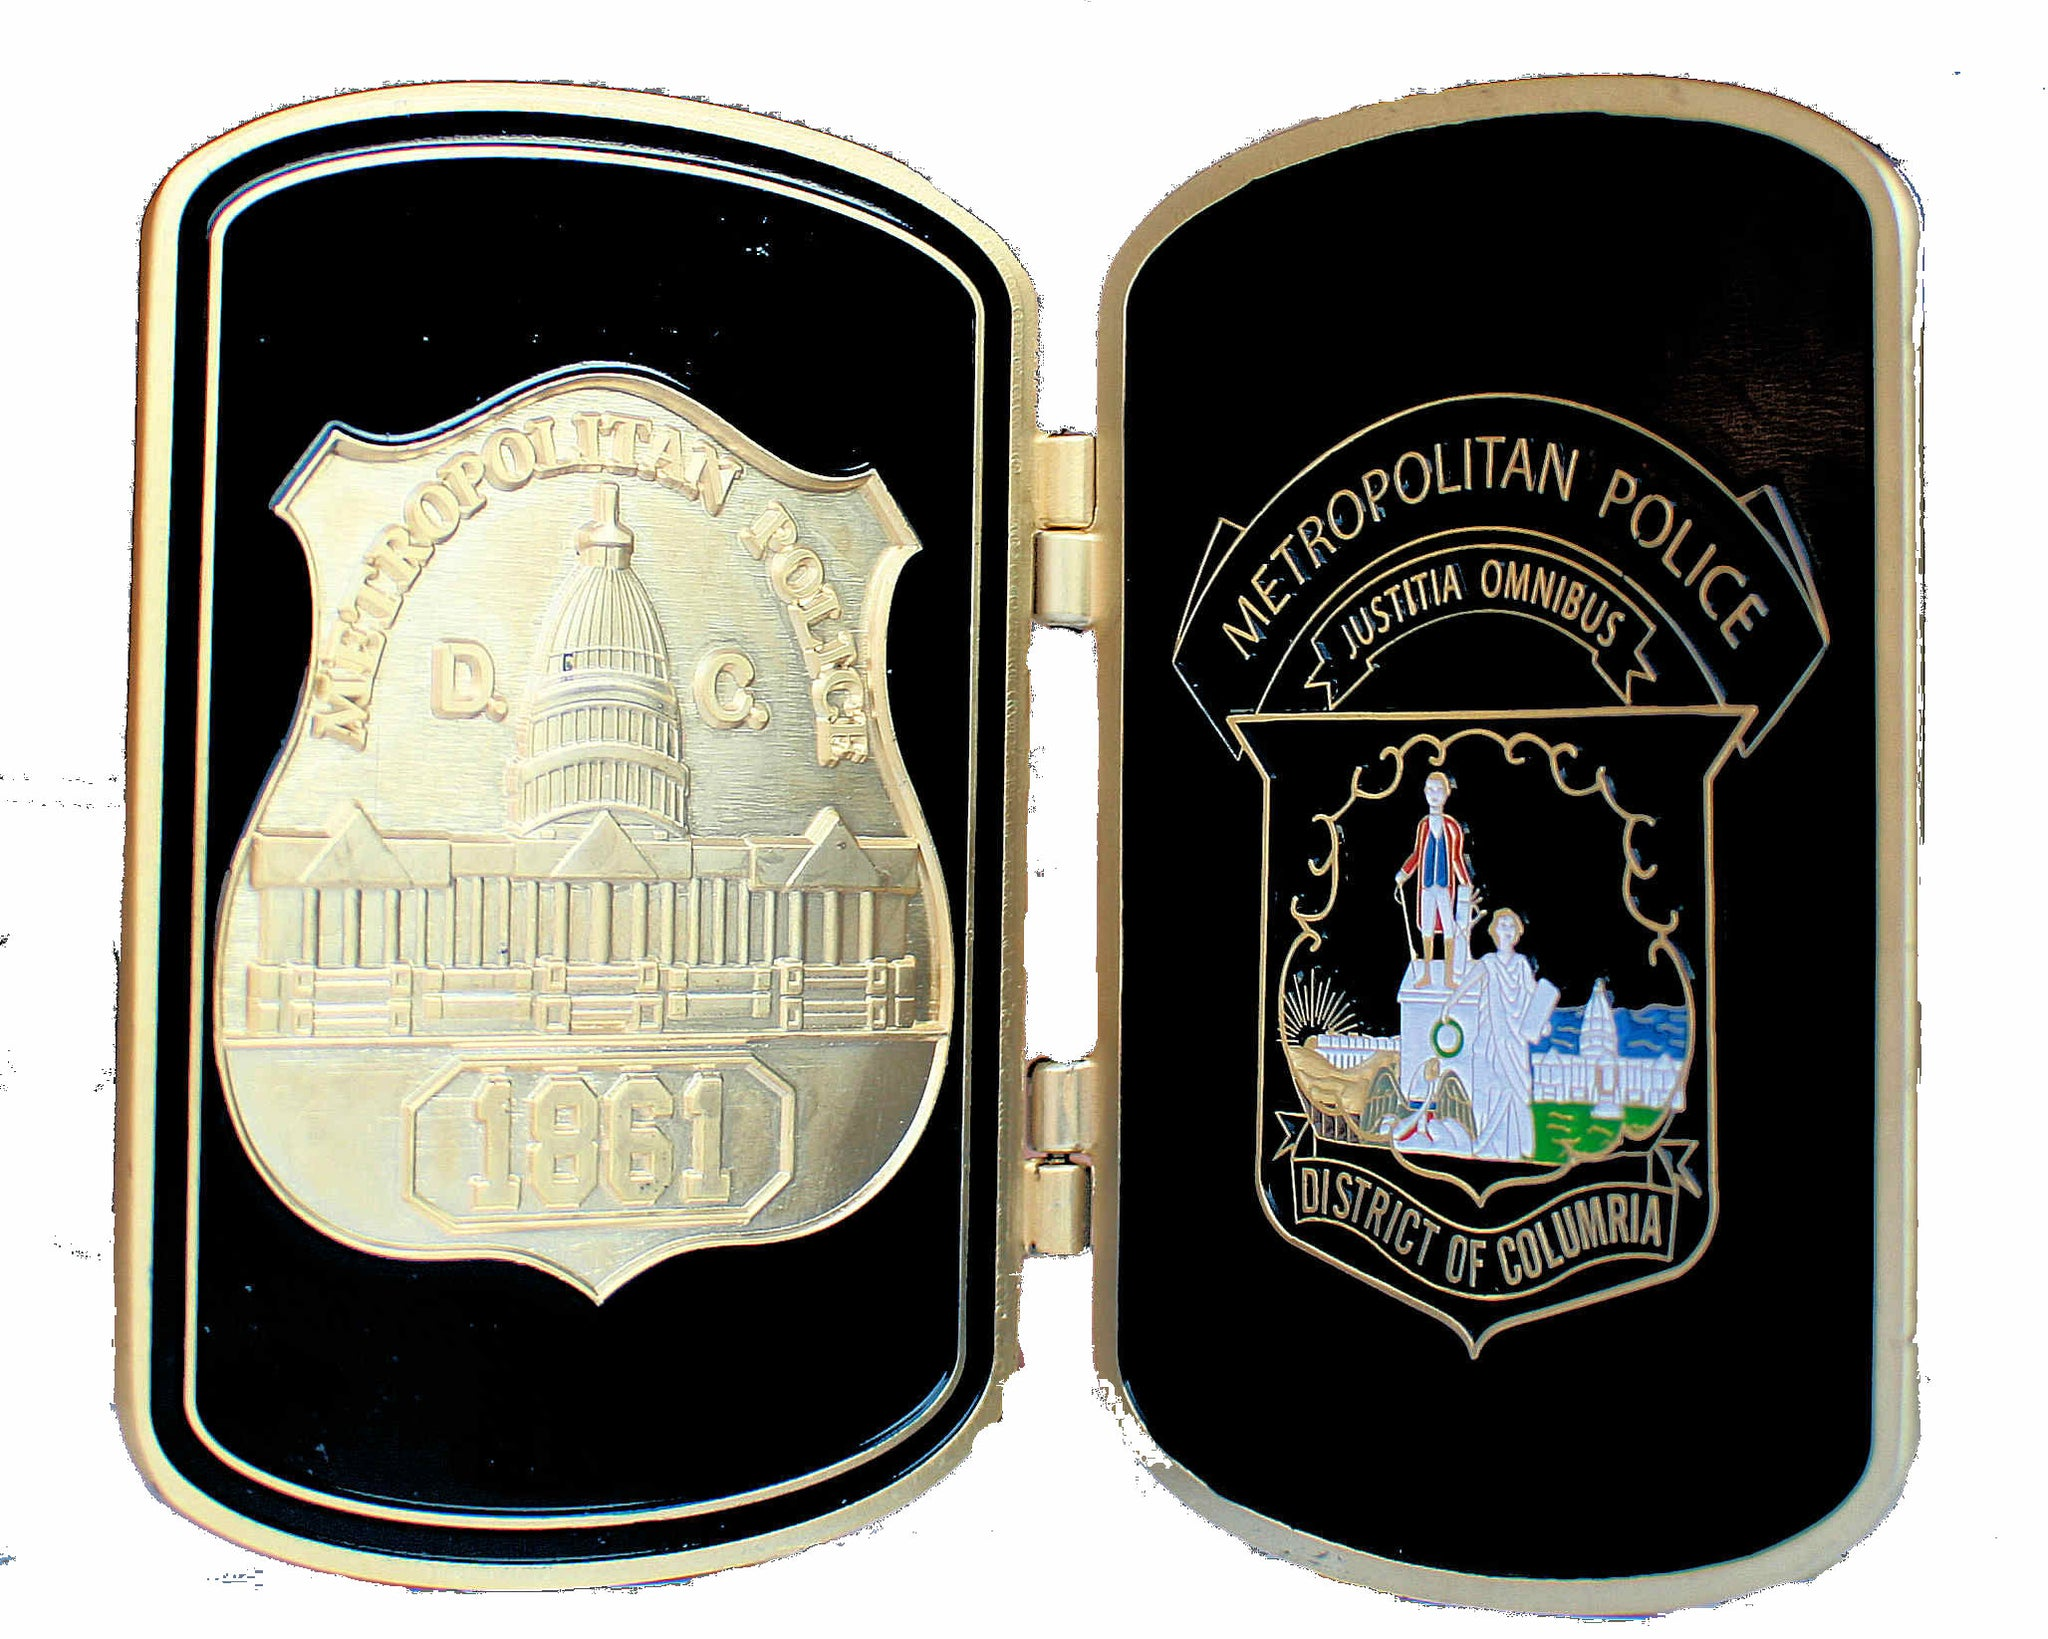 Metropolitan Police, Washington D.C. Call Box Replica Challenge Coin